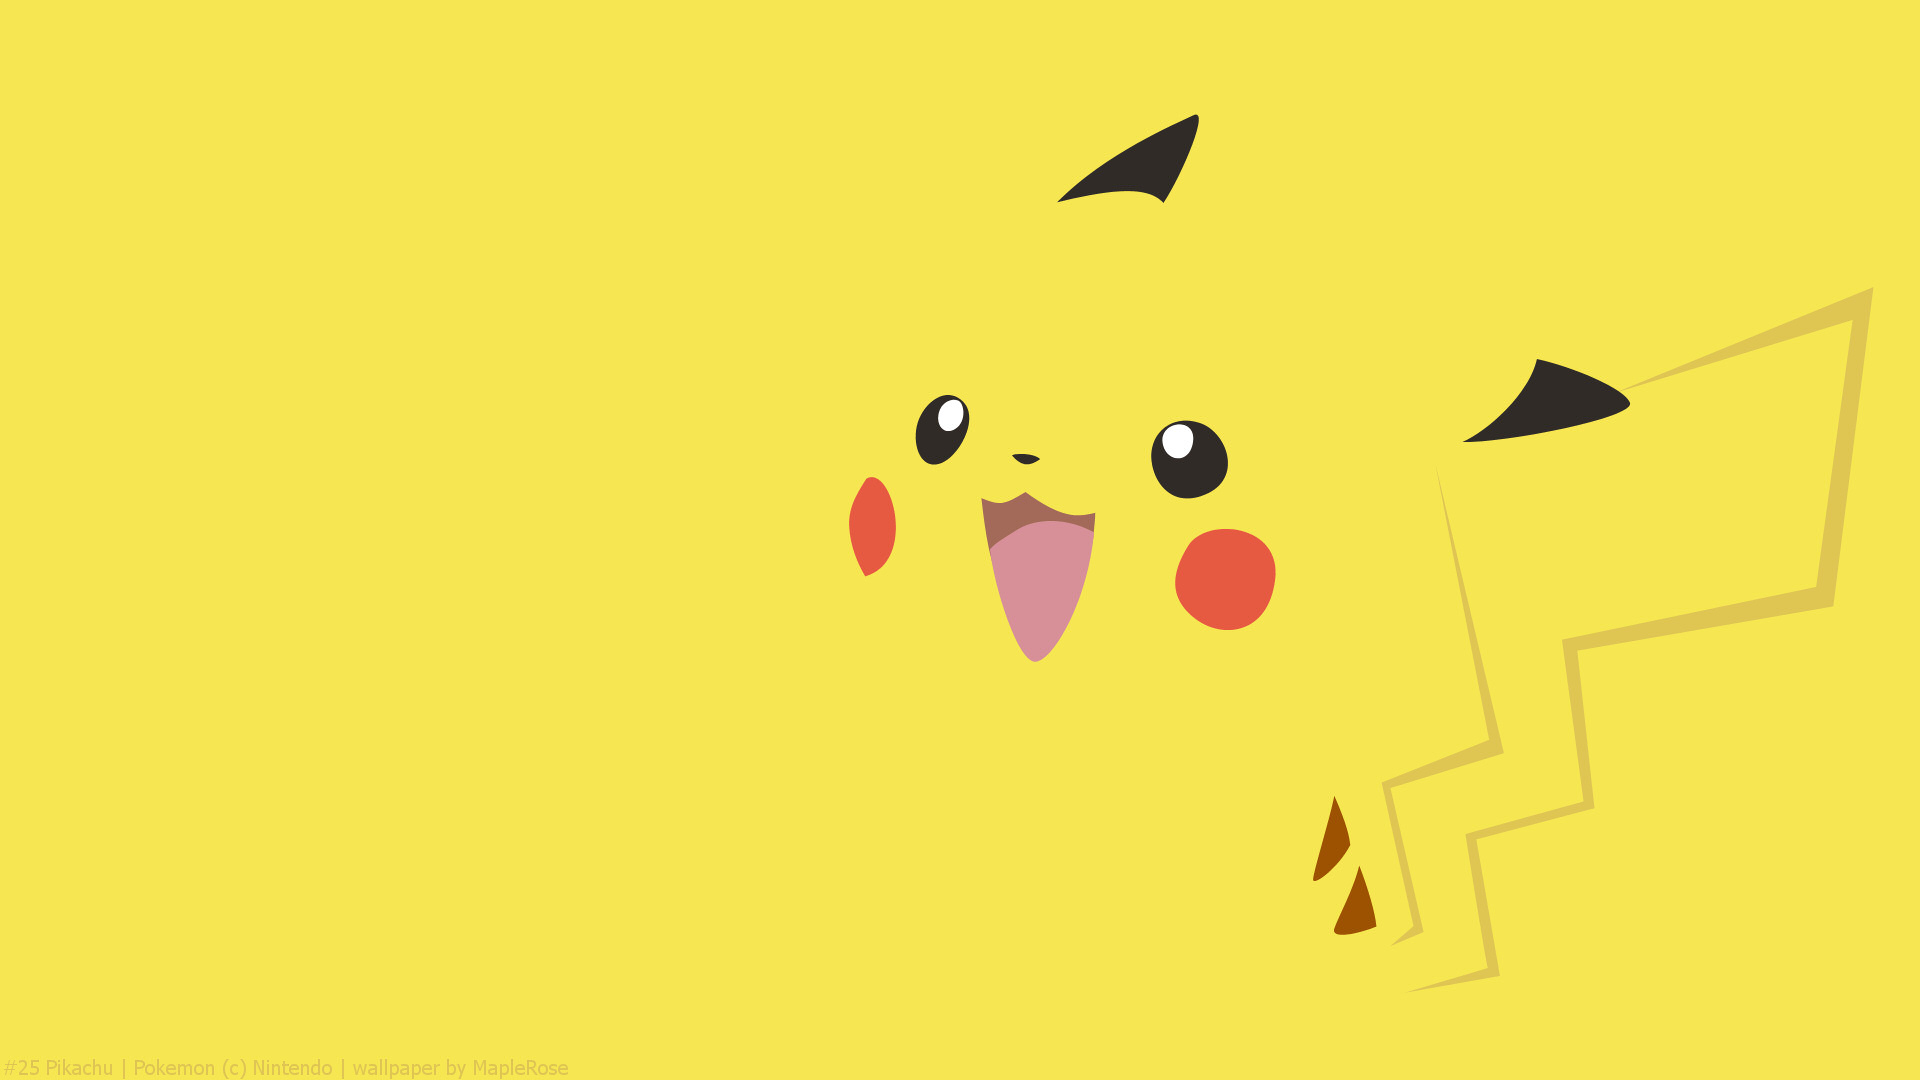 Pokemon Pikachu Wallpaper 1920x1080 Pokemon Pikachu 1920x1080